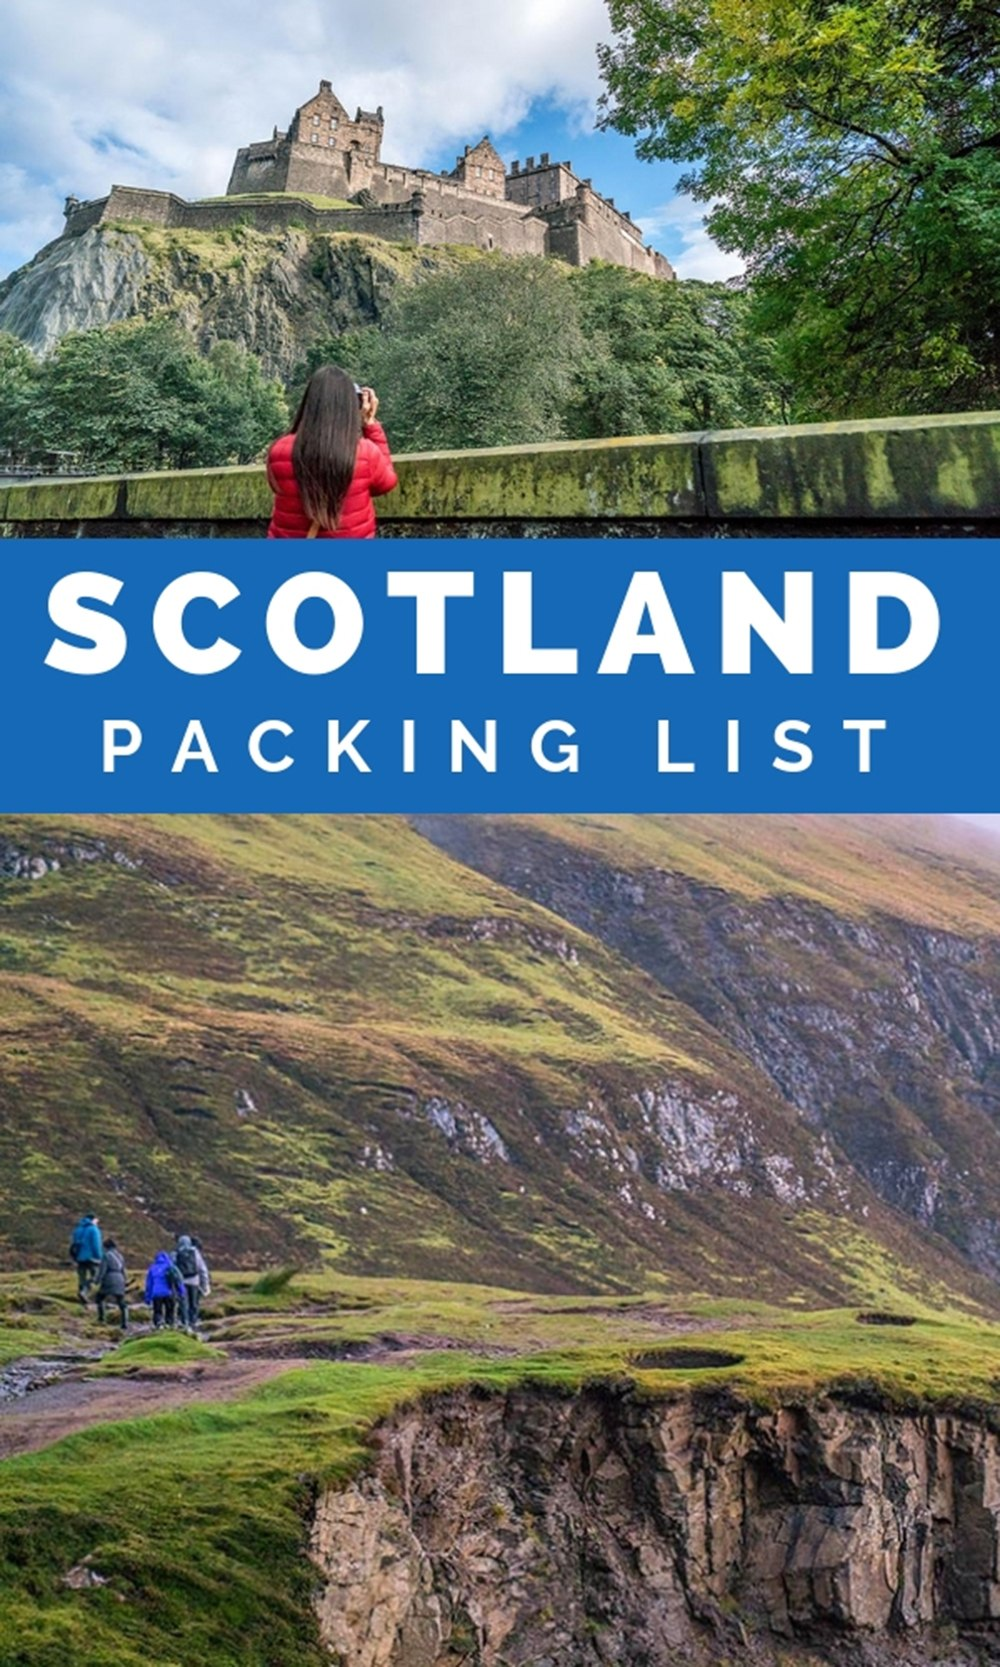 Scotland Packing List: What to Bring and What to Wear in